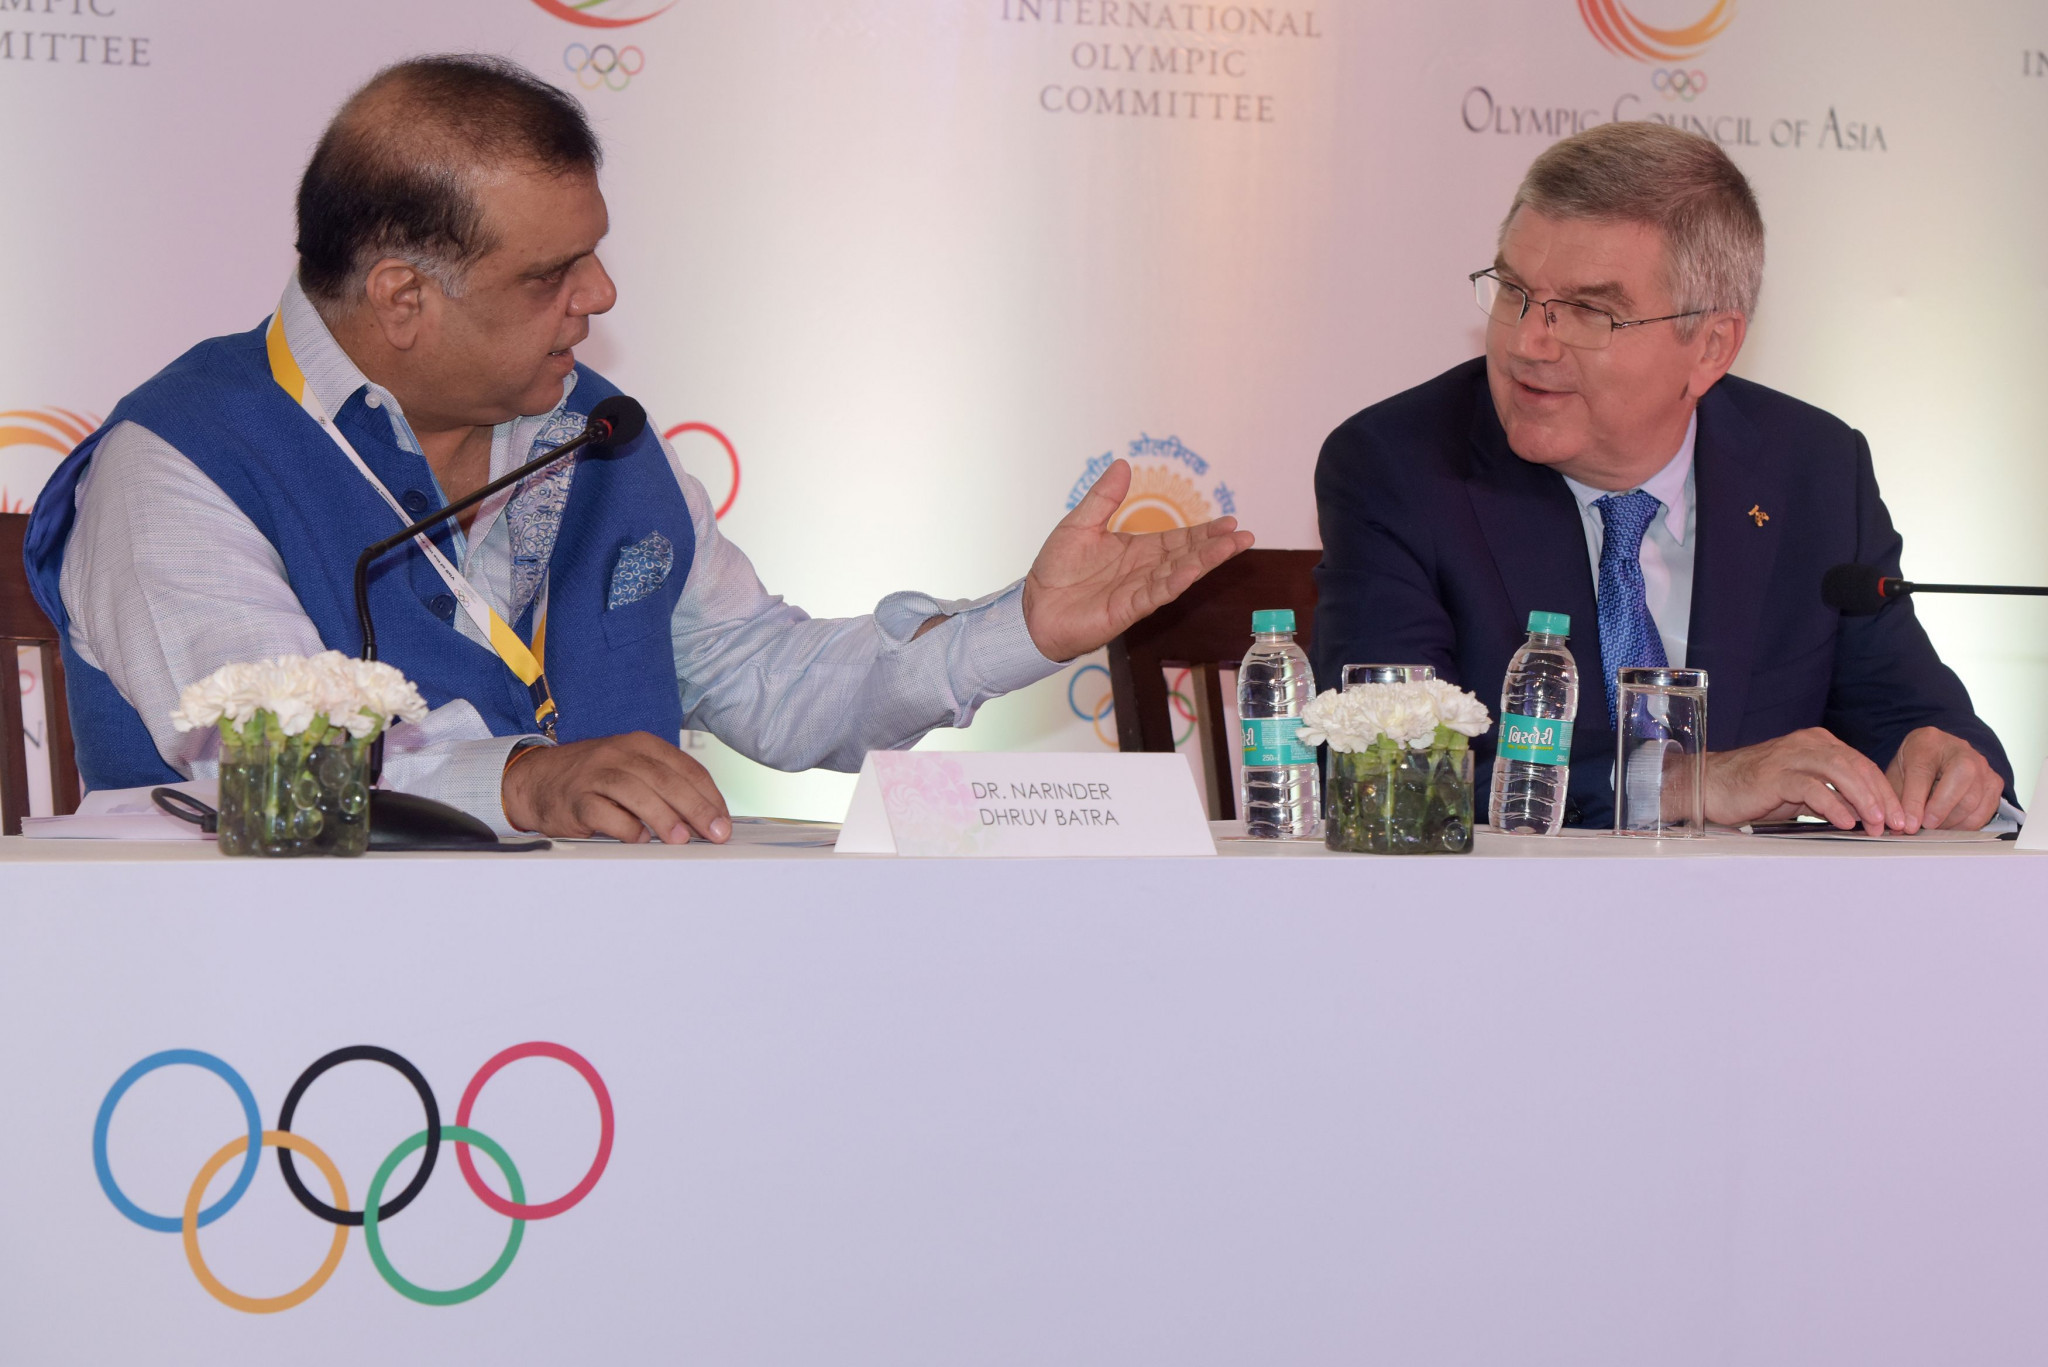 IOA President Narinder Batra participated in a joint press conference with IOC counterpart Thomas Bach during the German's visit to India in April ©Getty Images